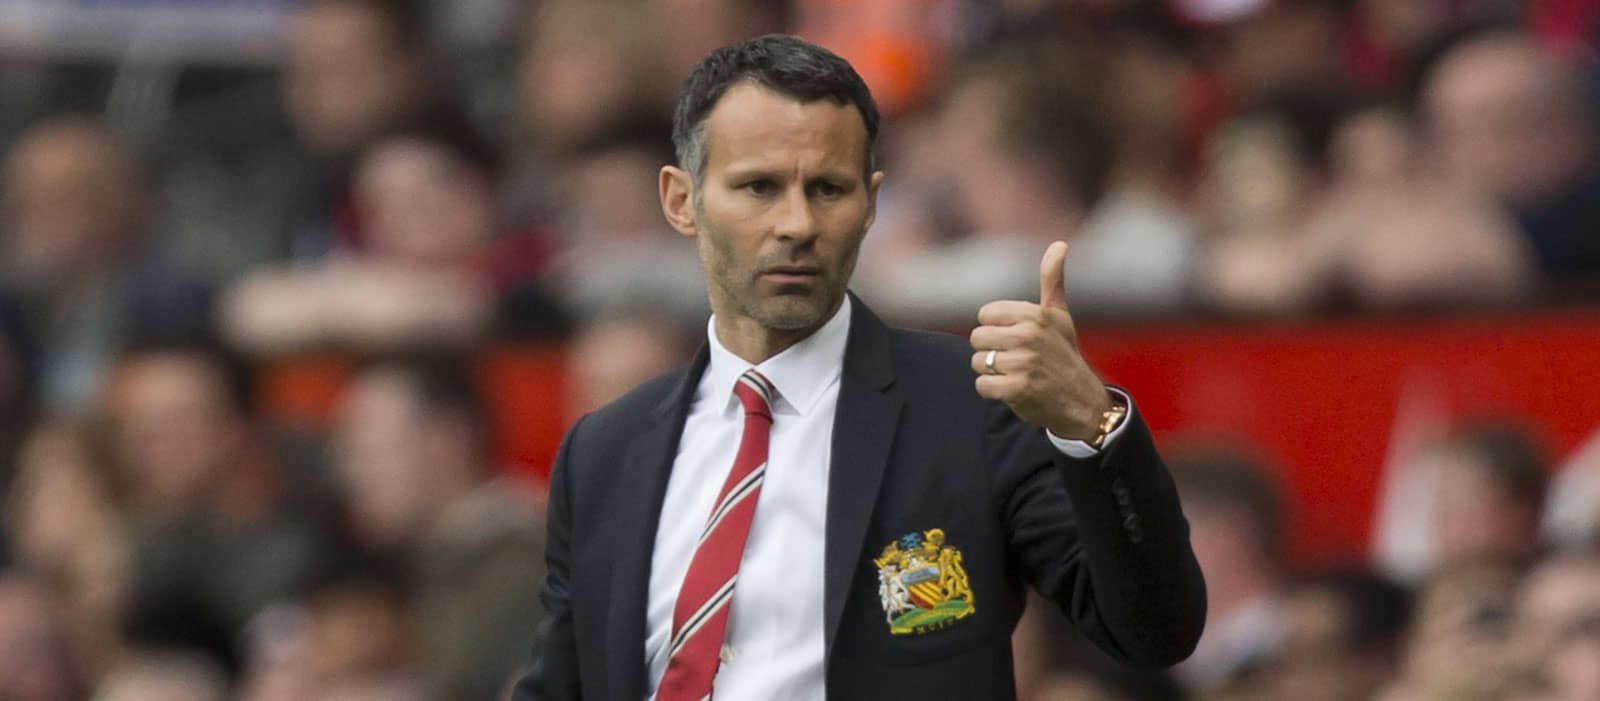 Manchester United can't win the Premier League this season, indicates club great Ryan Giggs